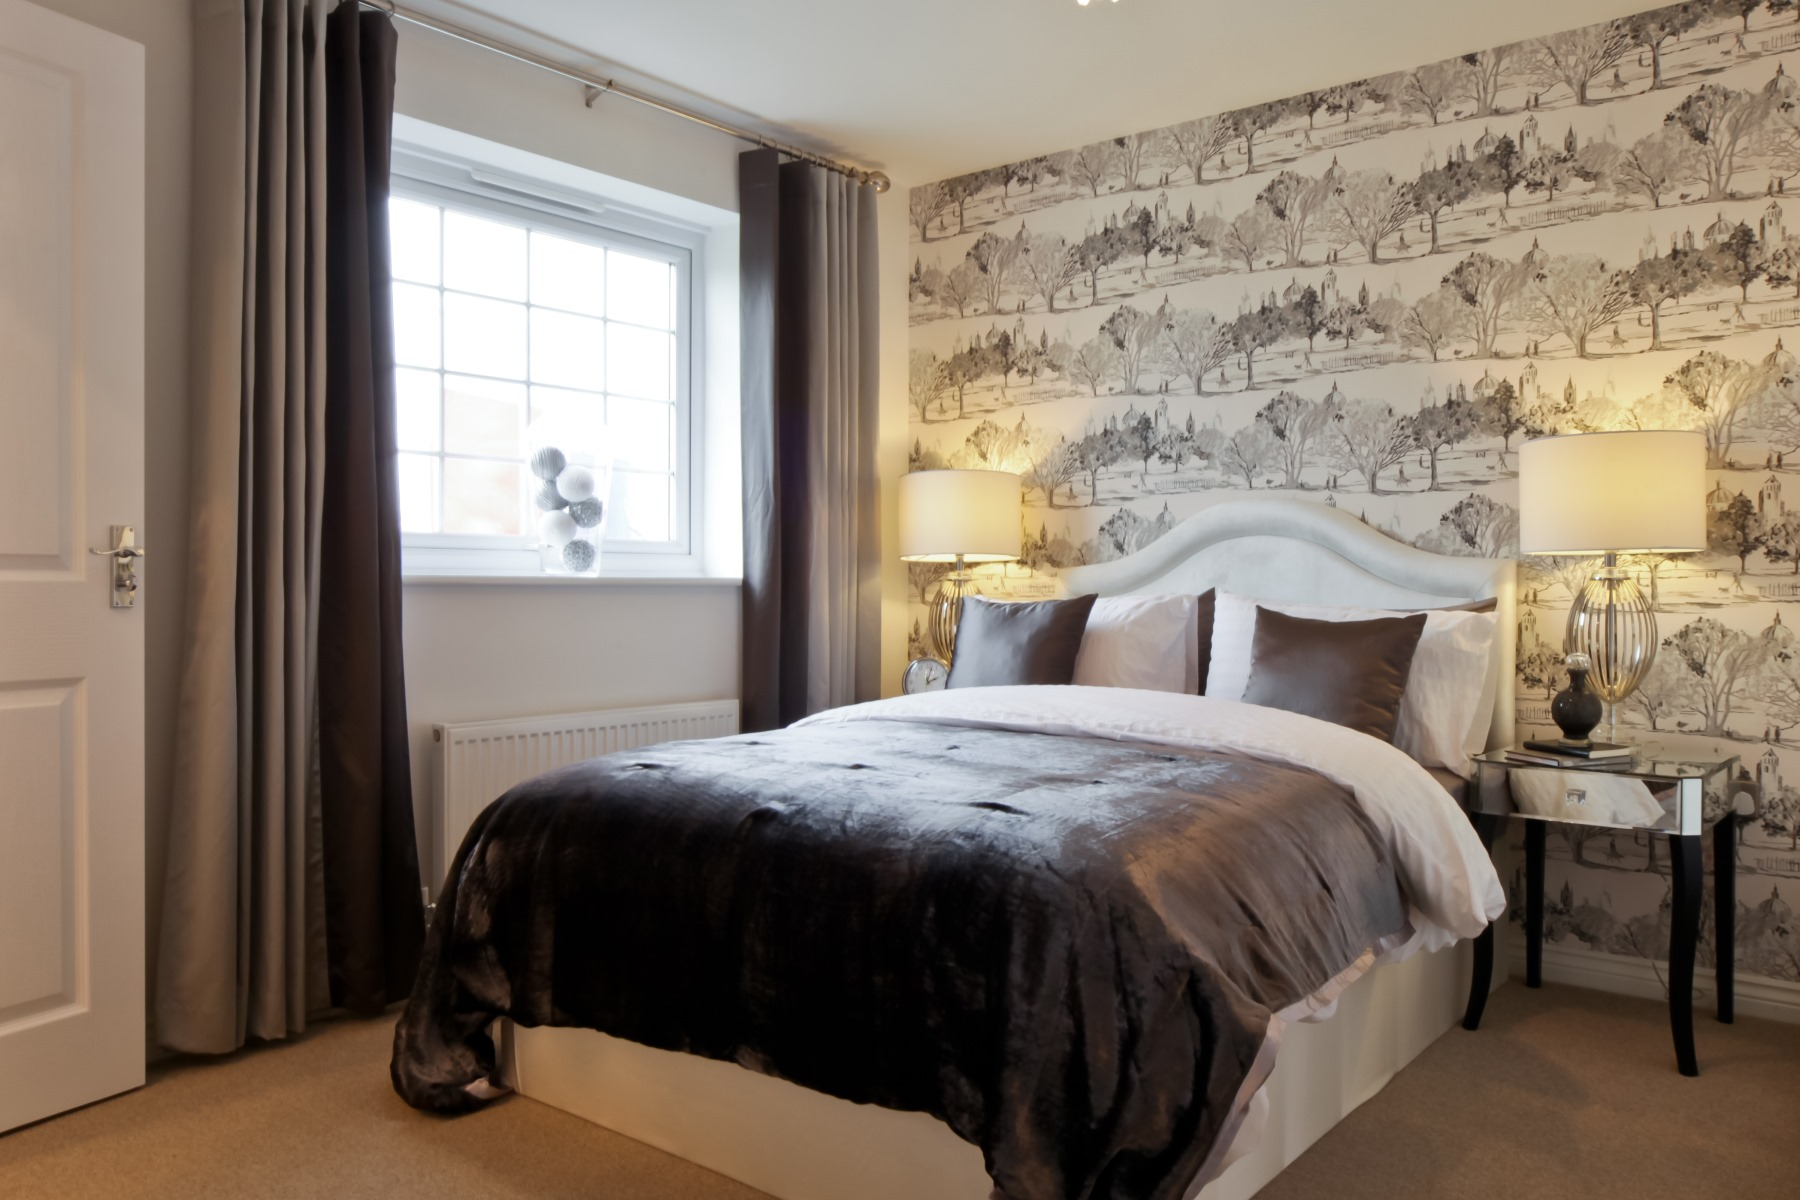 Tarvin Bedroom 2 - Oakwood Meadows